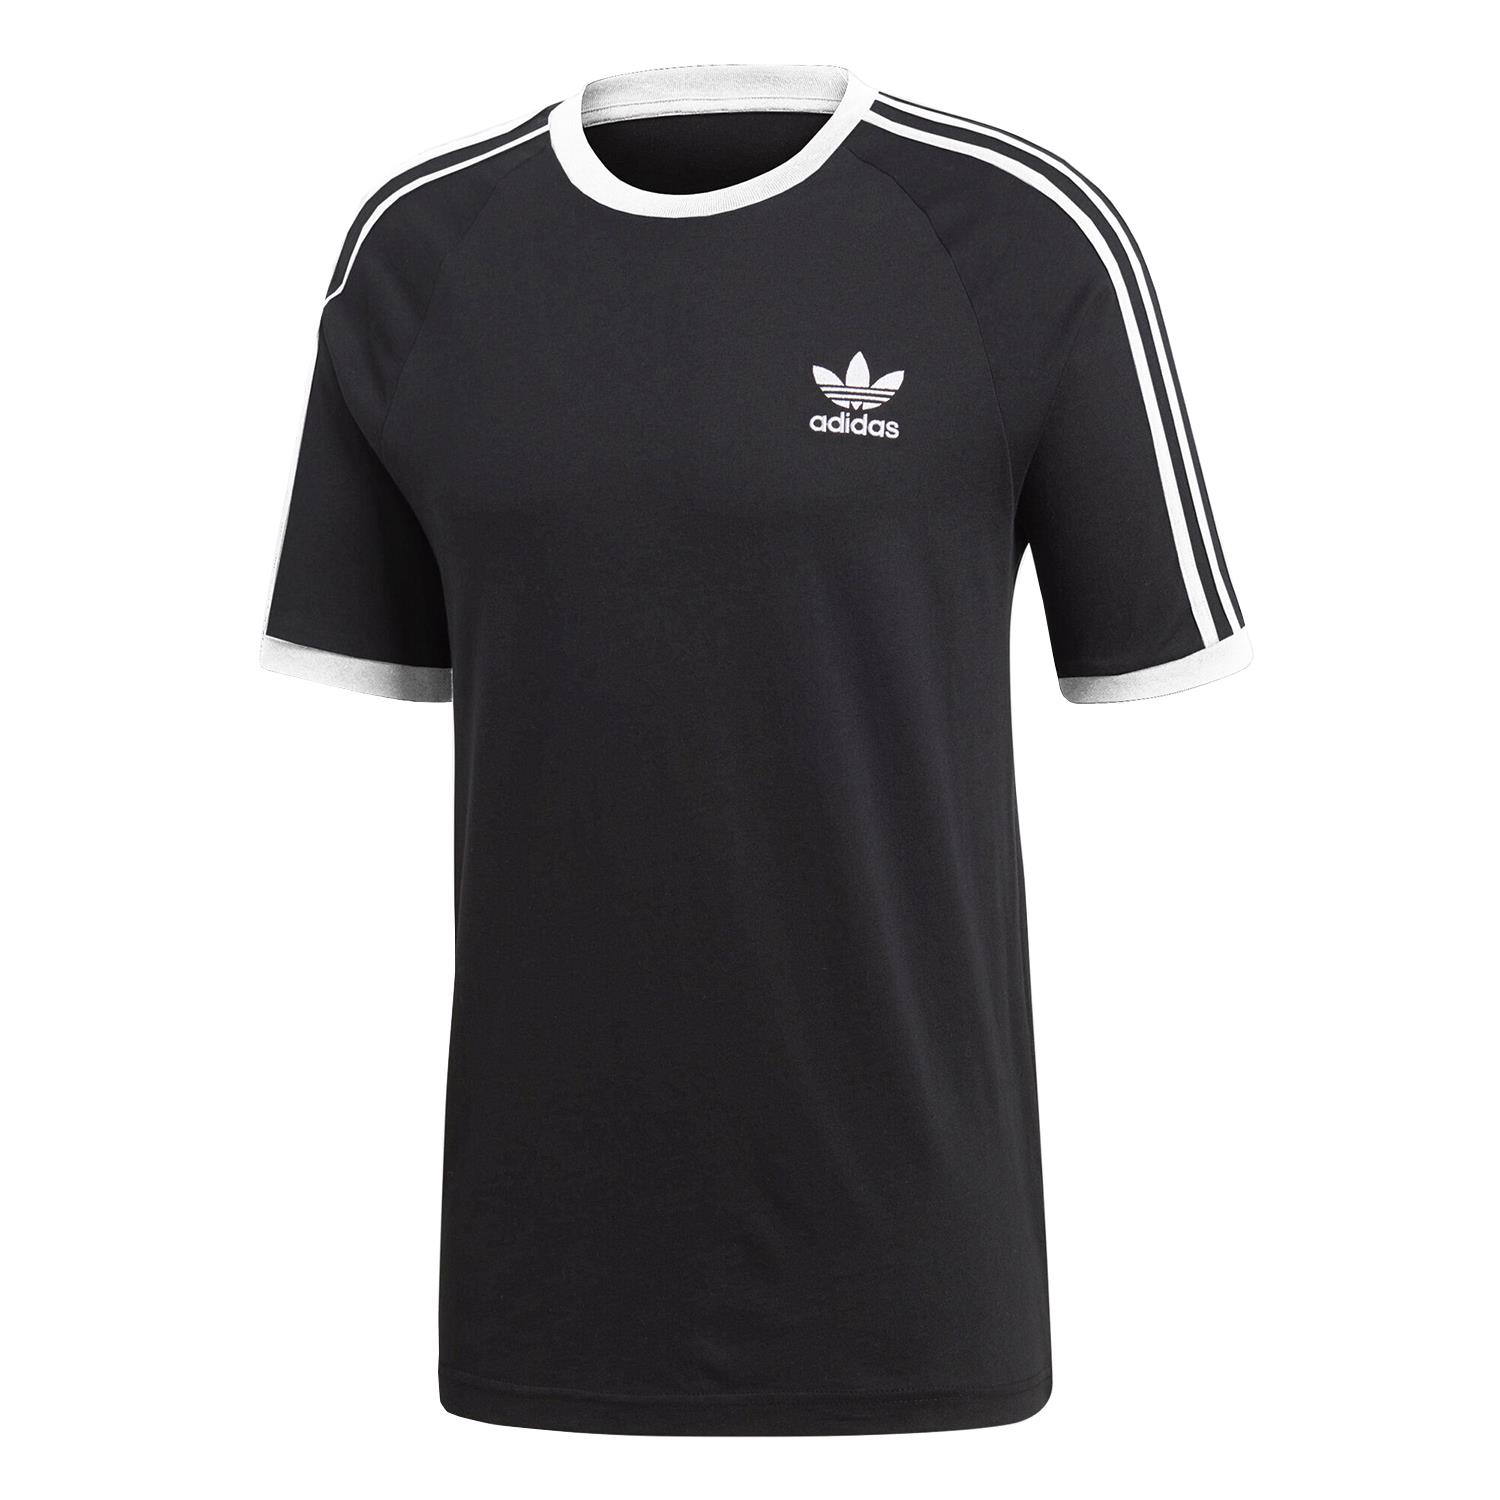 Adidas Originals Classic 3-Stripes Crew Neck Short Sleeve Cotton T-Shirt